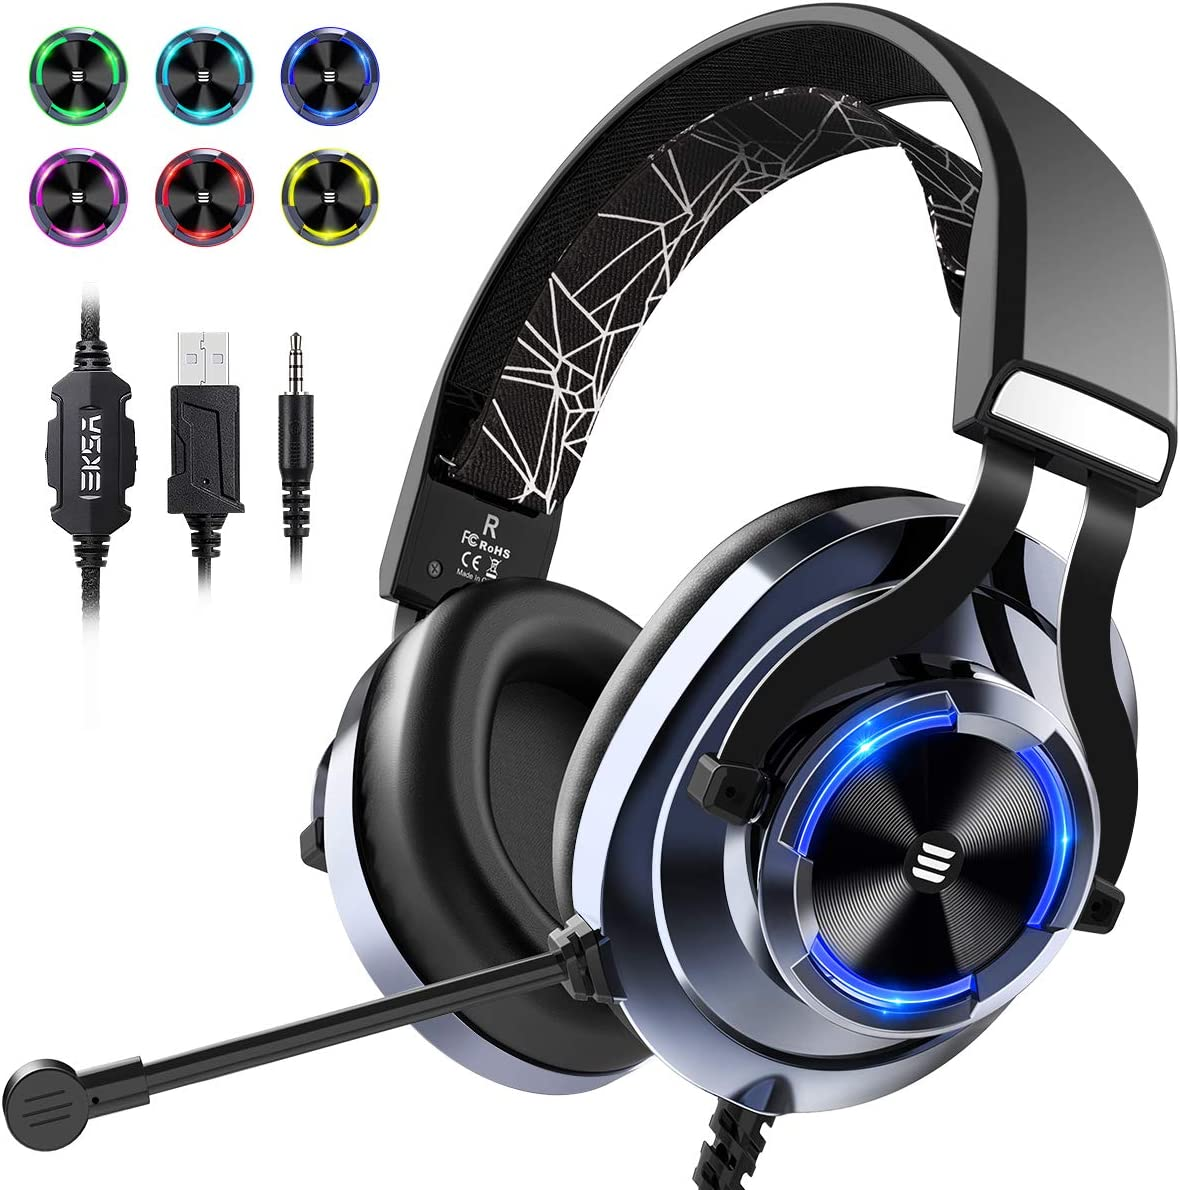 EKSA USB  HEADSET PS4 Nintendo Switch Fortnite This is the best headset for the nintendo switch fortnite and gaming the